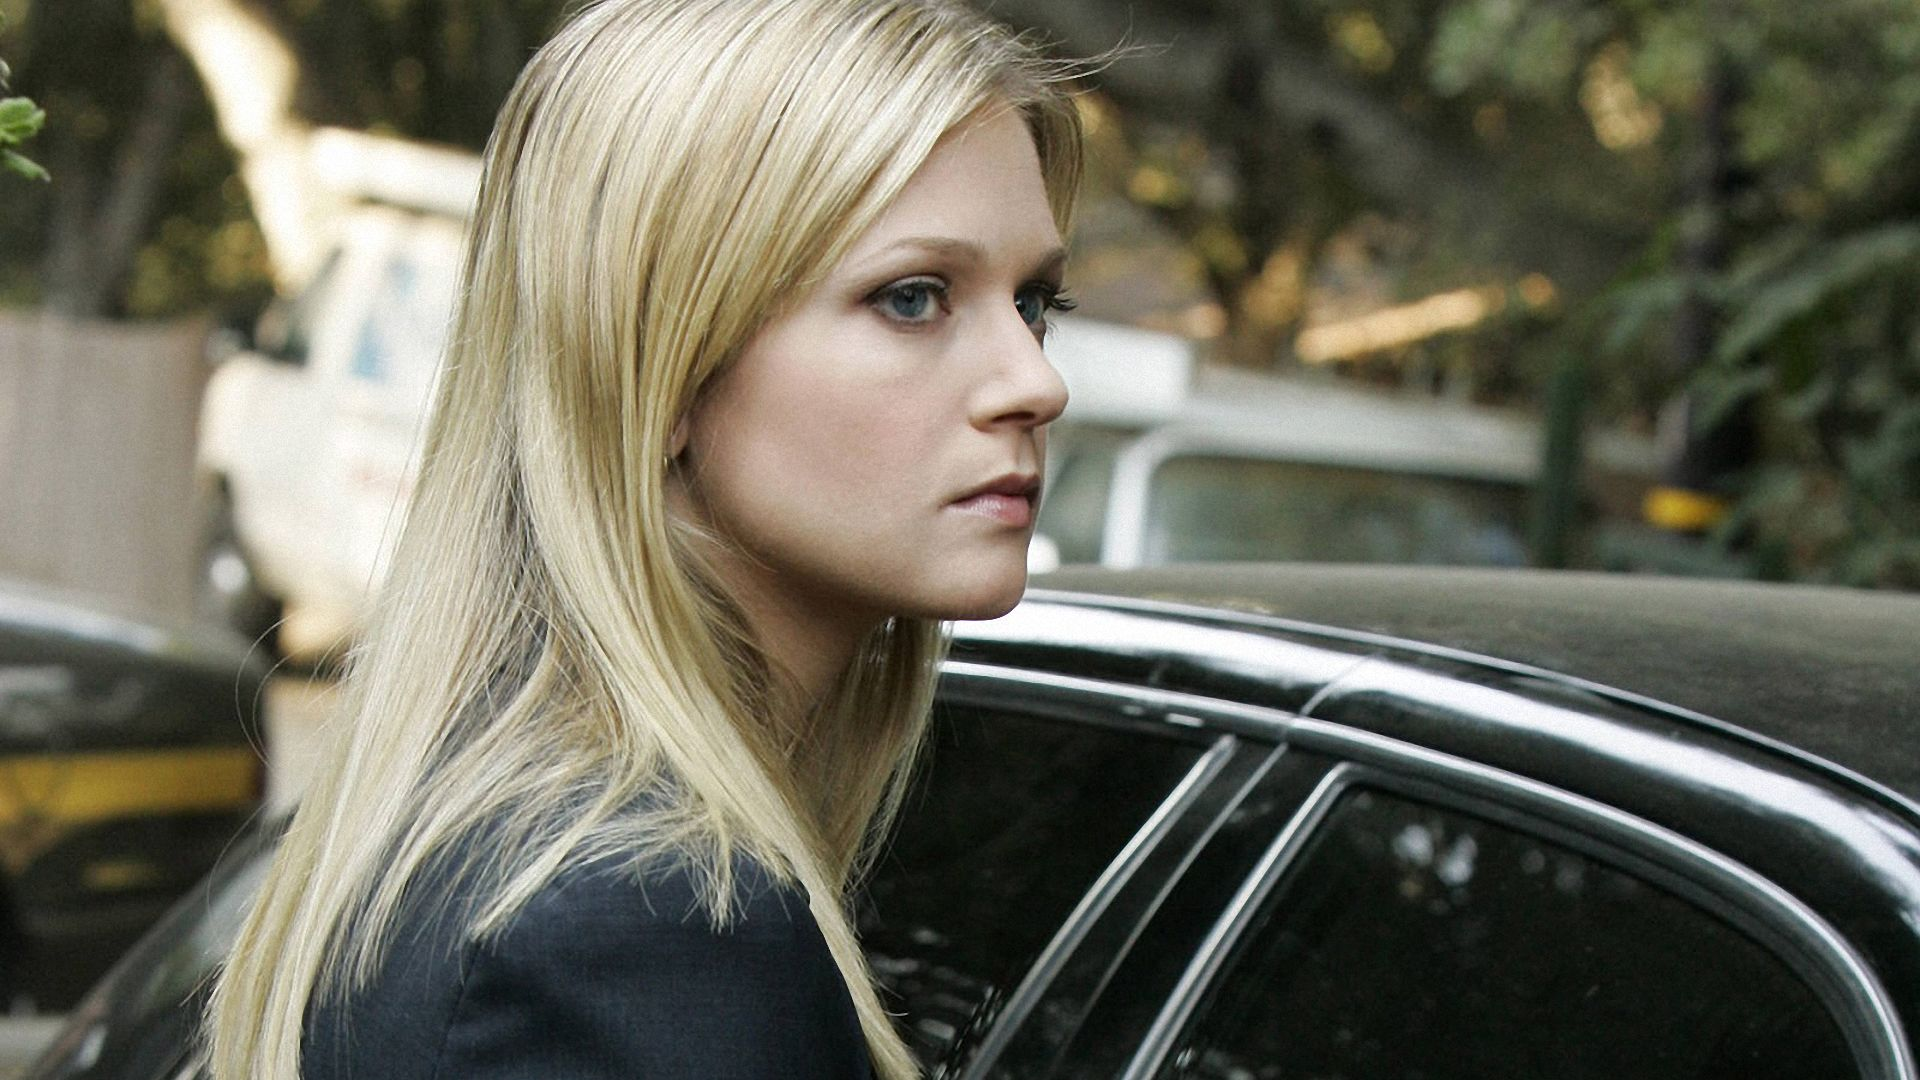 Andrea Joy Aj Cook a.j. cook : wallpapers for everyone